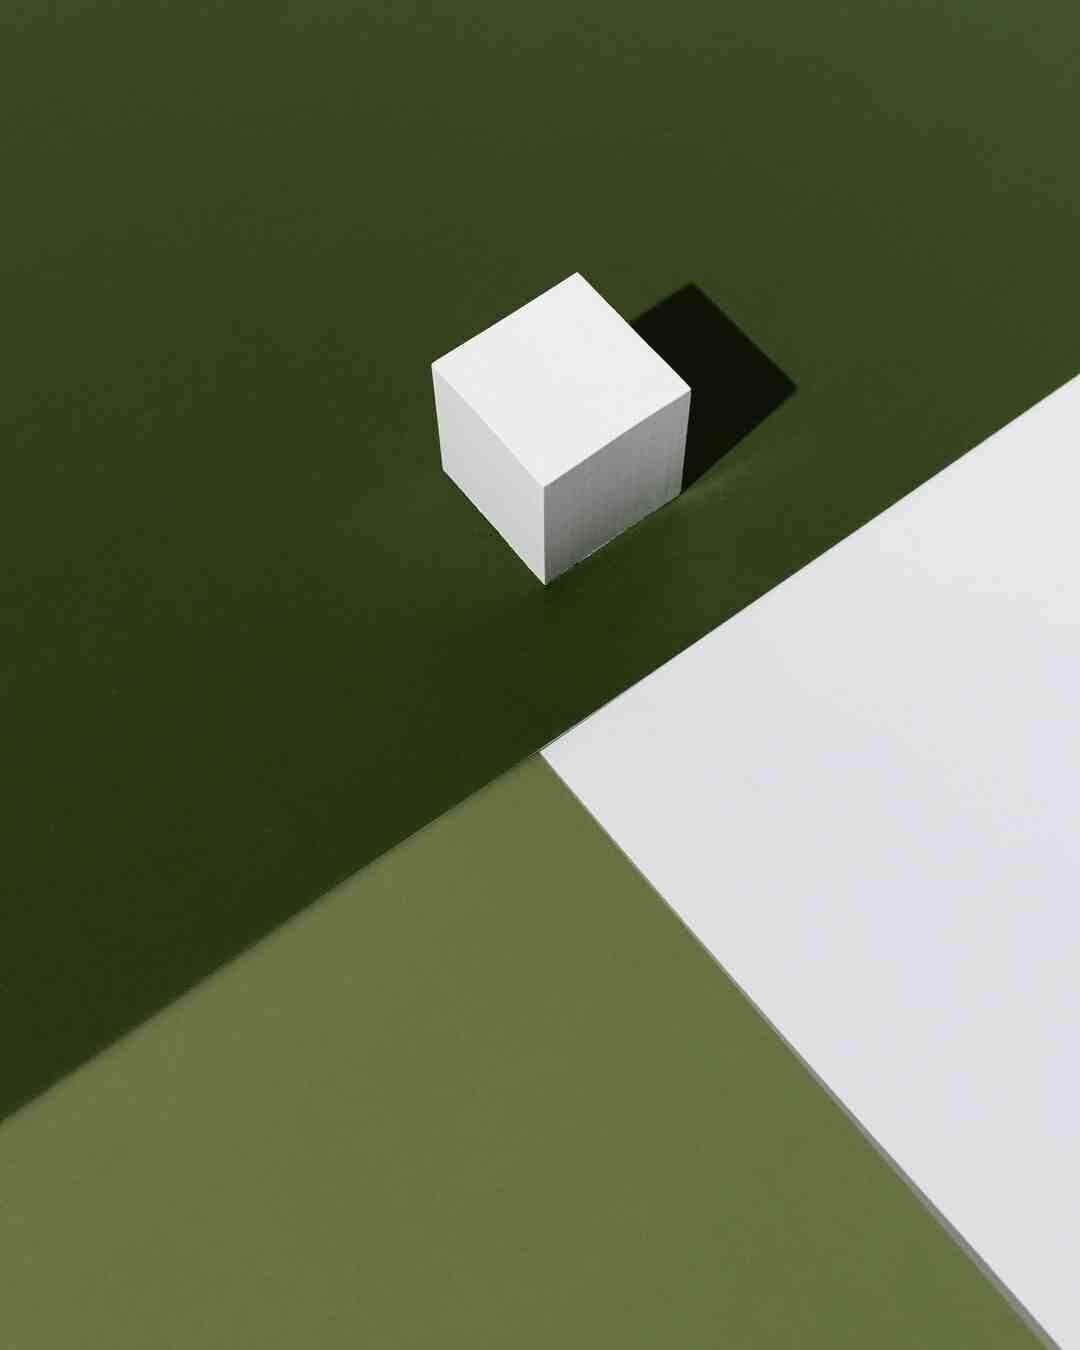 How to Use Square